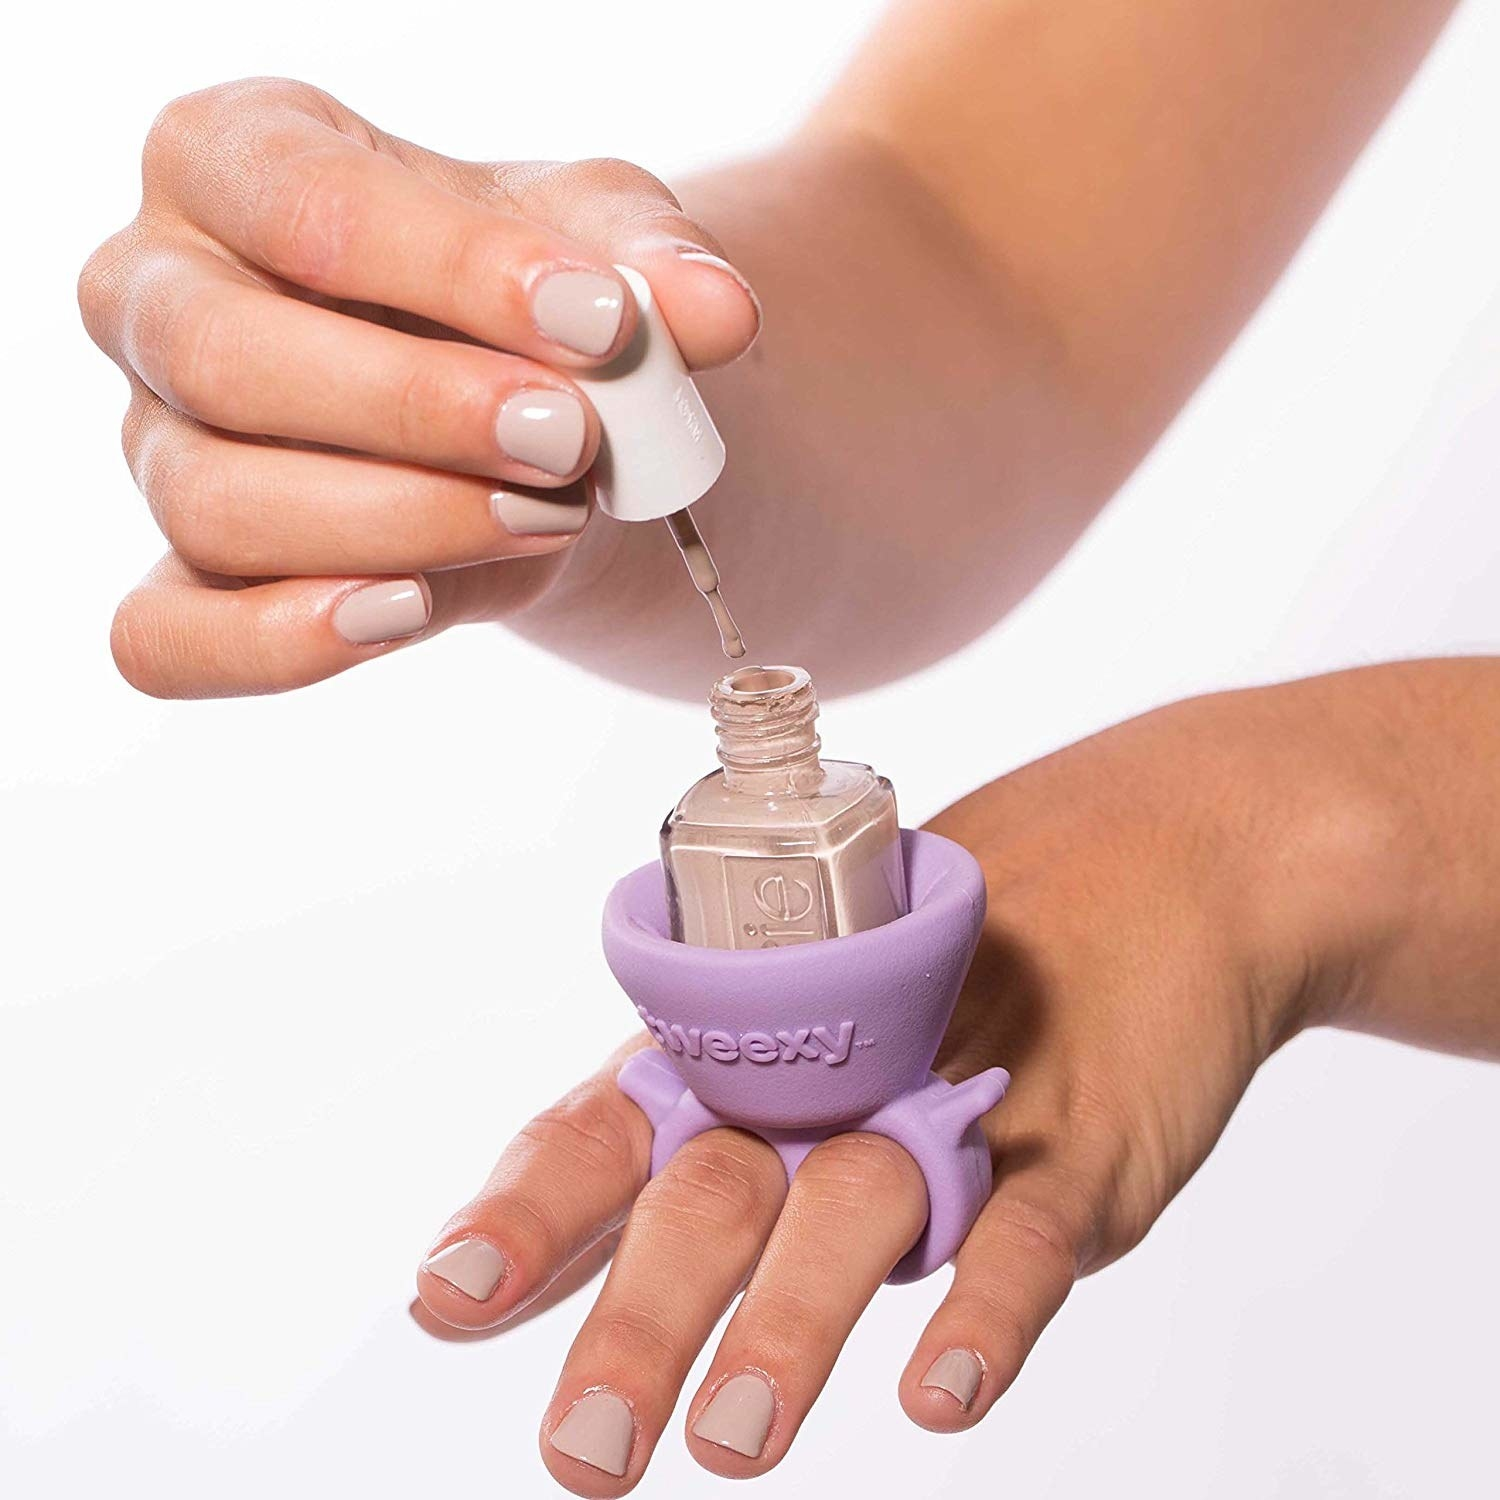 Hands using the ring-like holder to apply nail polish